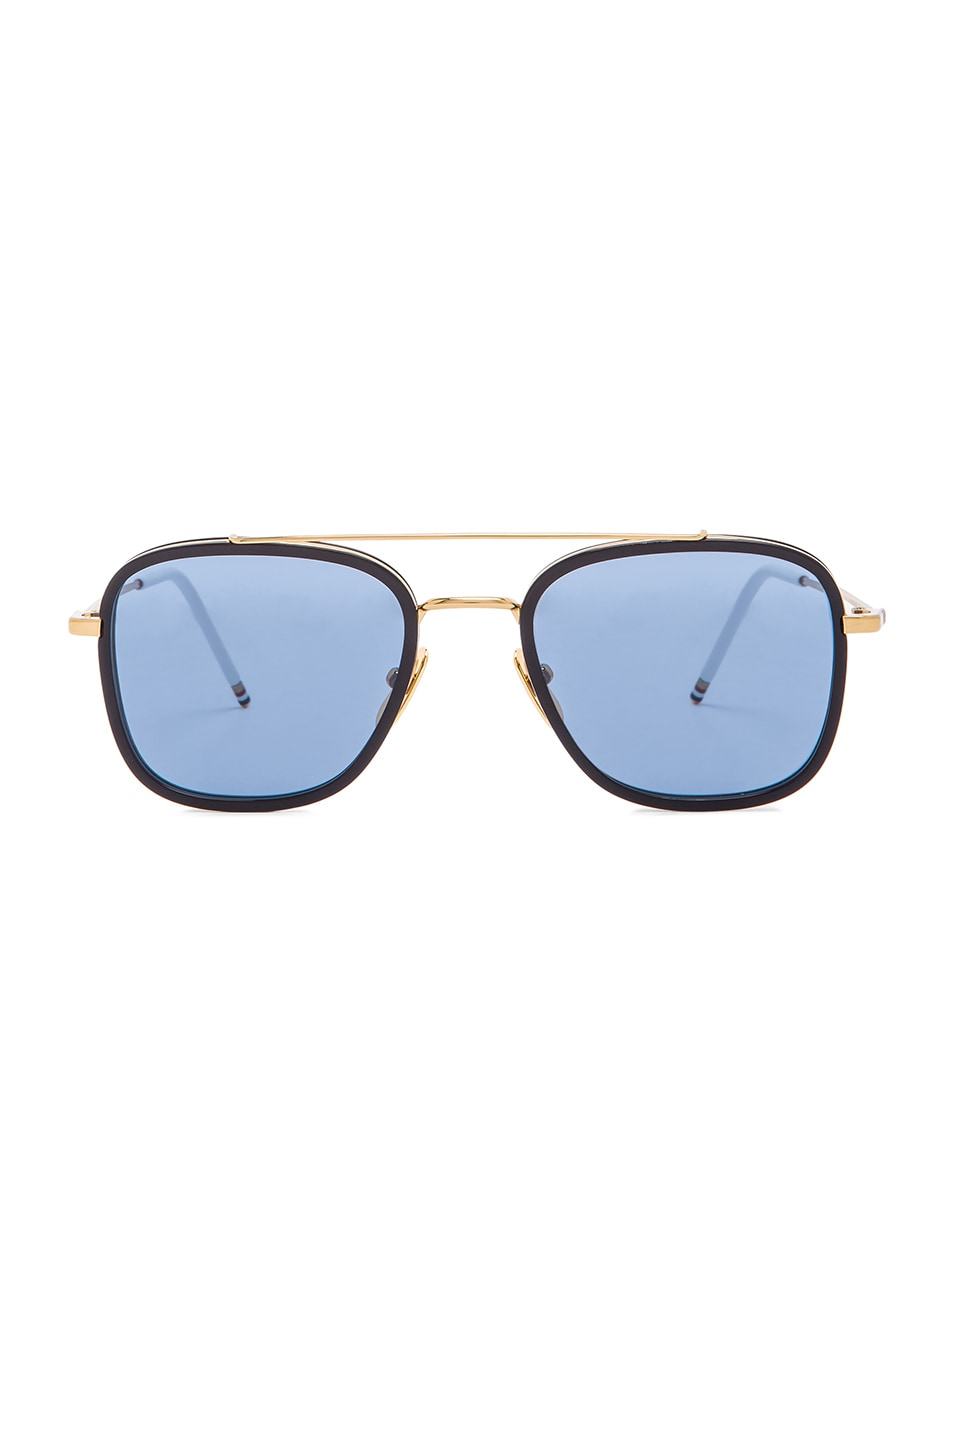 bd25eae8b3a Image 1 of Thom Browne Square Frame Sunglasses in 18K Gold   Navy